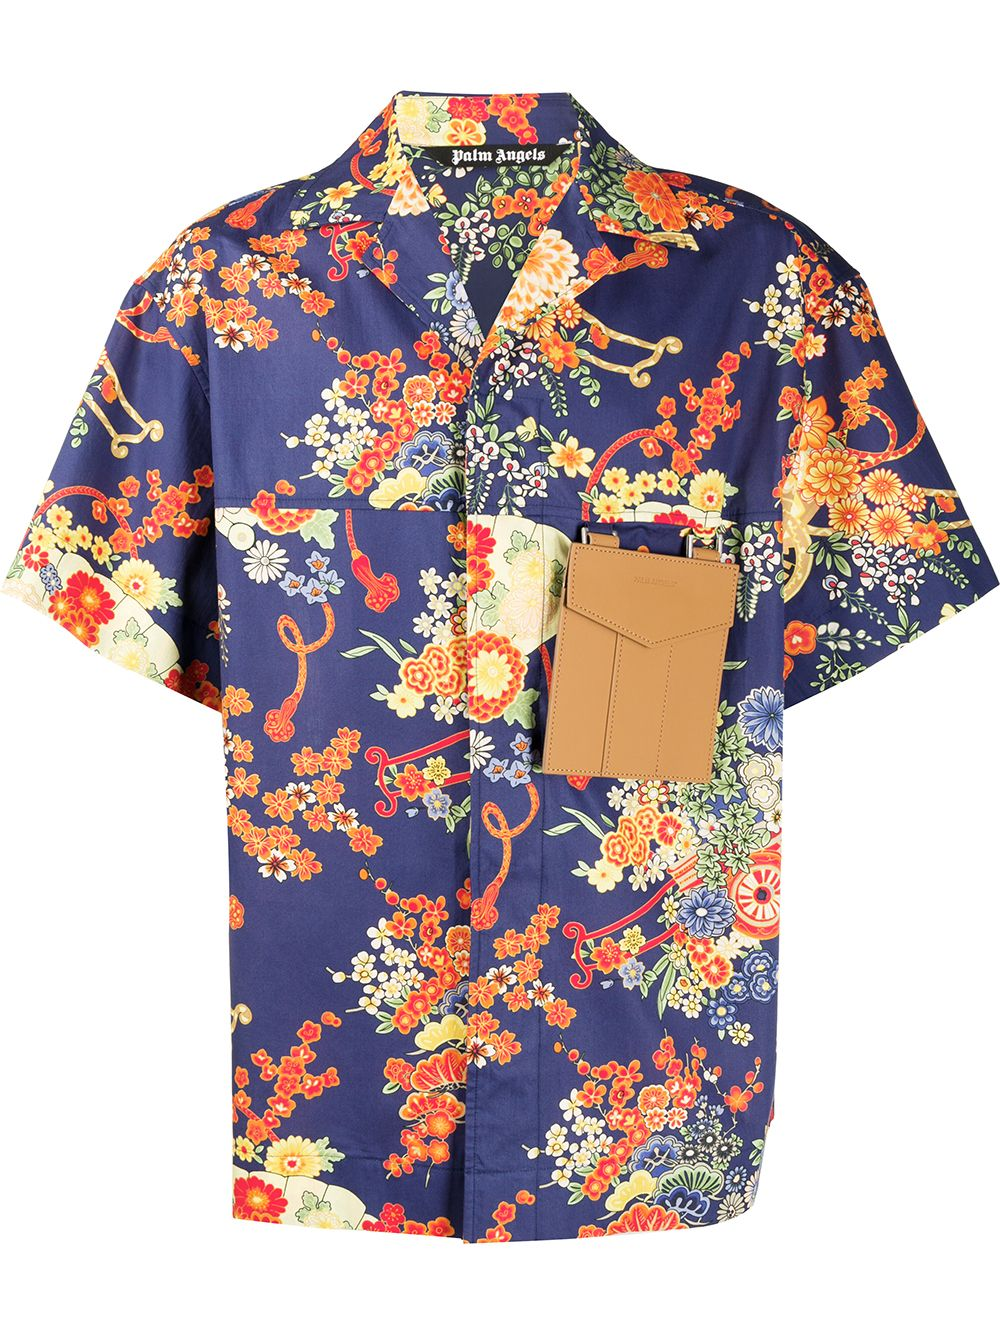 Picture of Palm Angels | Blooming Shirt